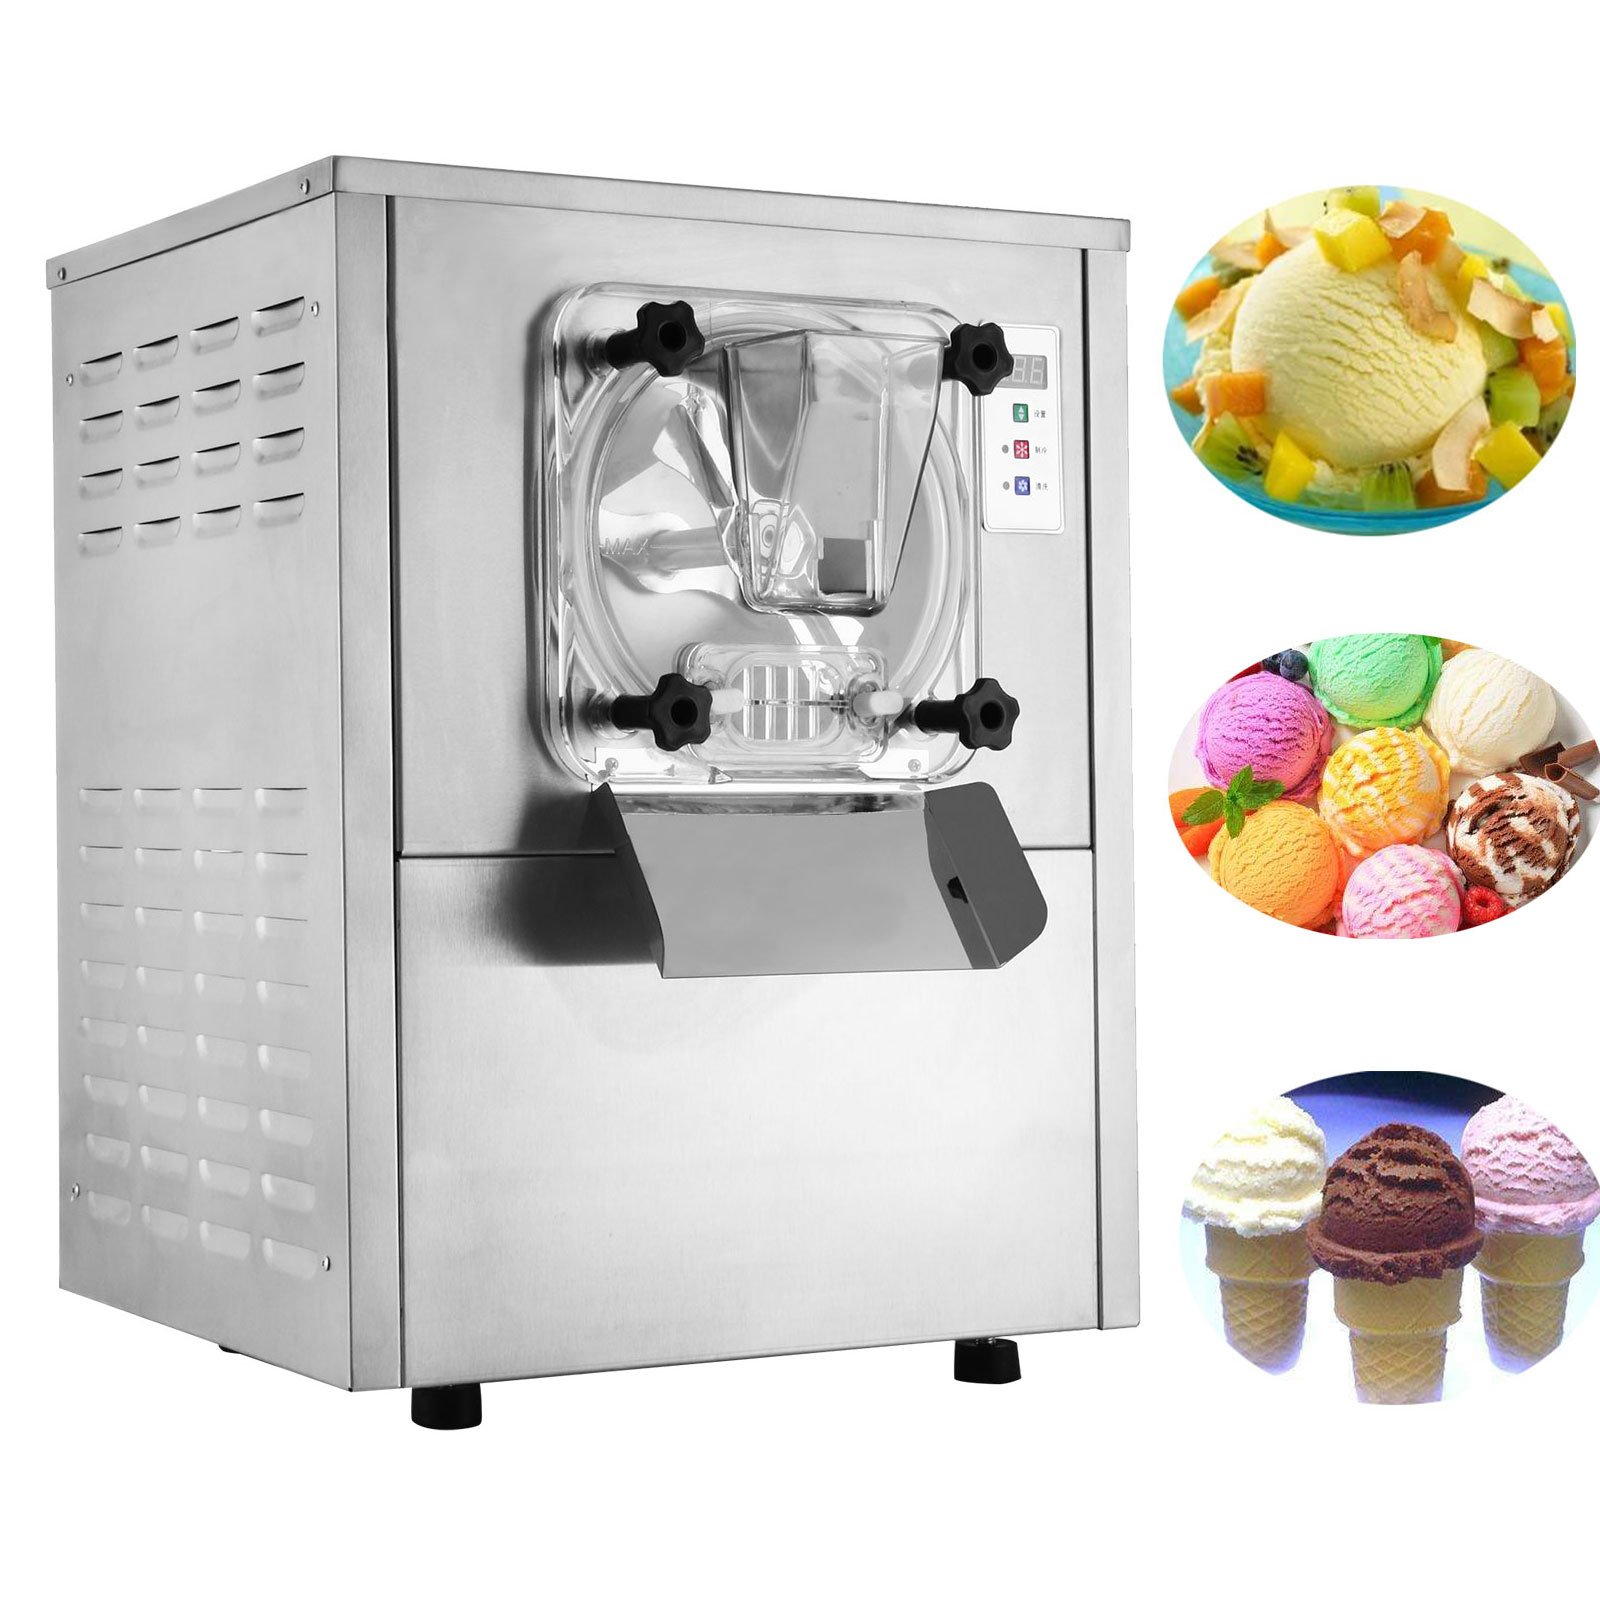 Happybuy Hard Ice Cream Machine 20L/H Food Grade 304 Stainless Steel Ice Cream Machine 1400W Commercial Ice Cream Maker Great for Recreation Center Churches and Camps